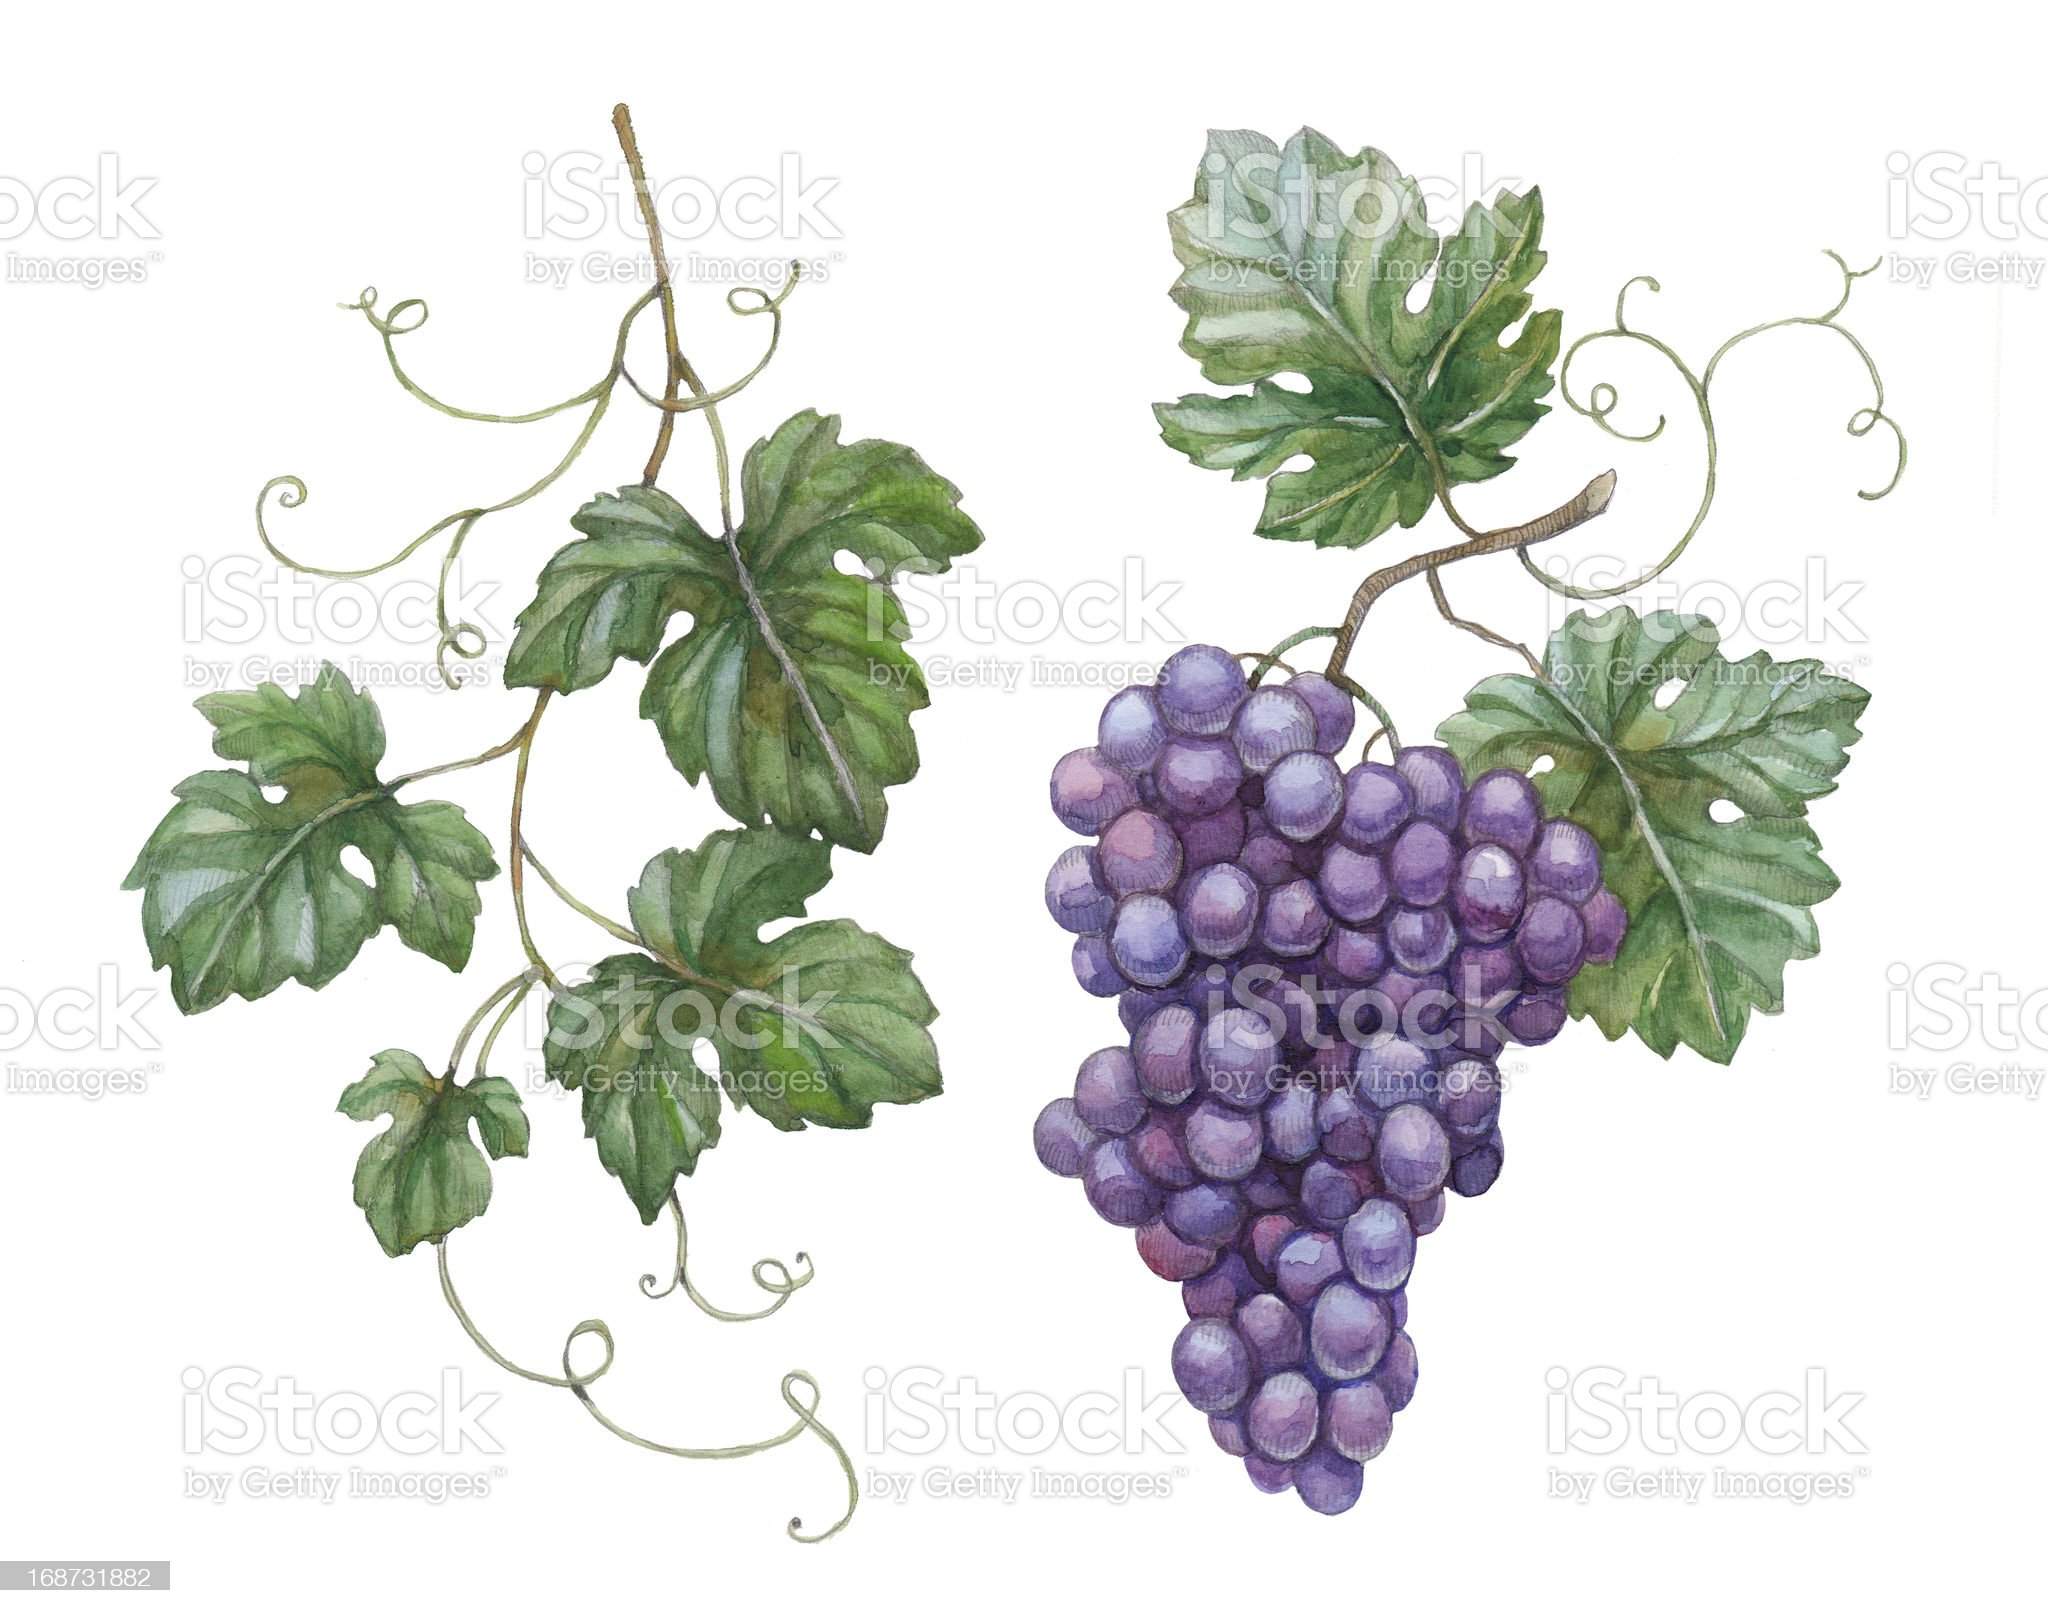 Watercolor illustration of grapes with leaves royalty-free stock vector art